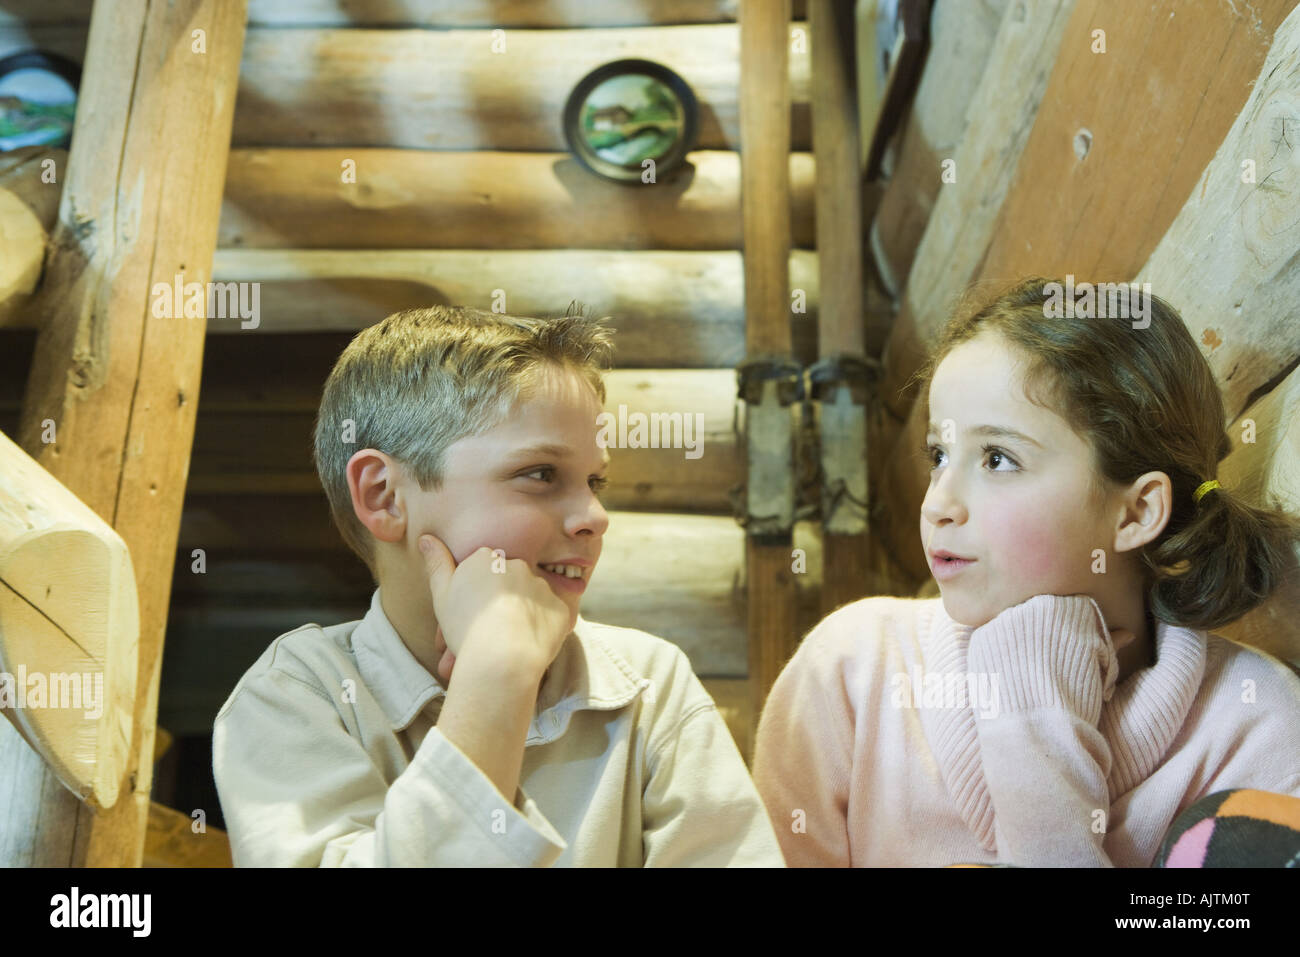 Preteen boy and girl sitting side by side, talking - Stock Image